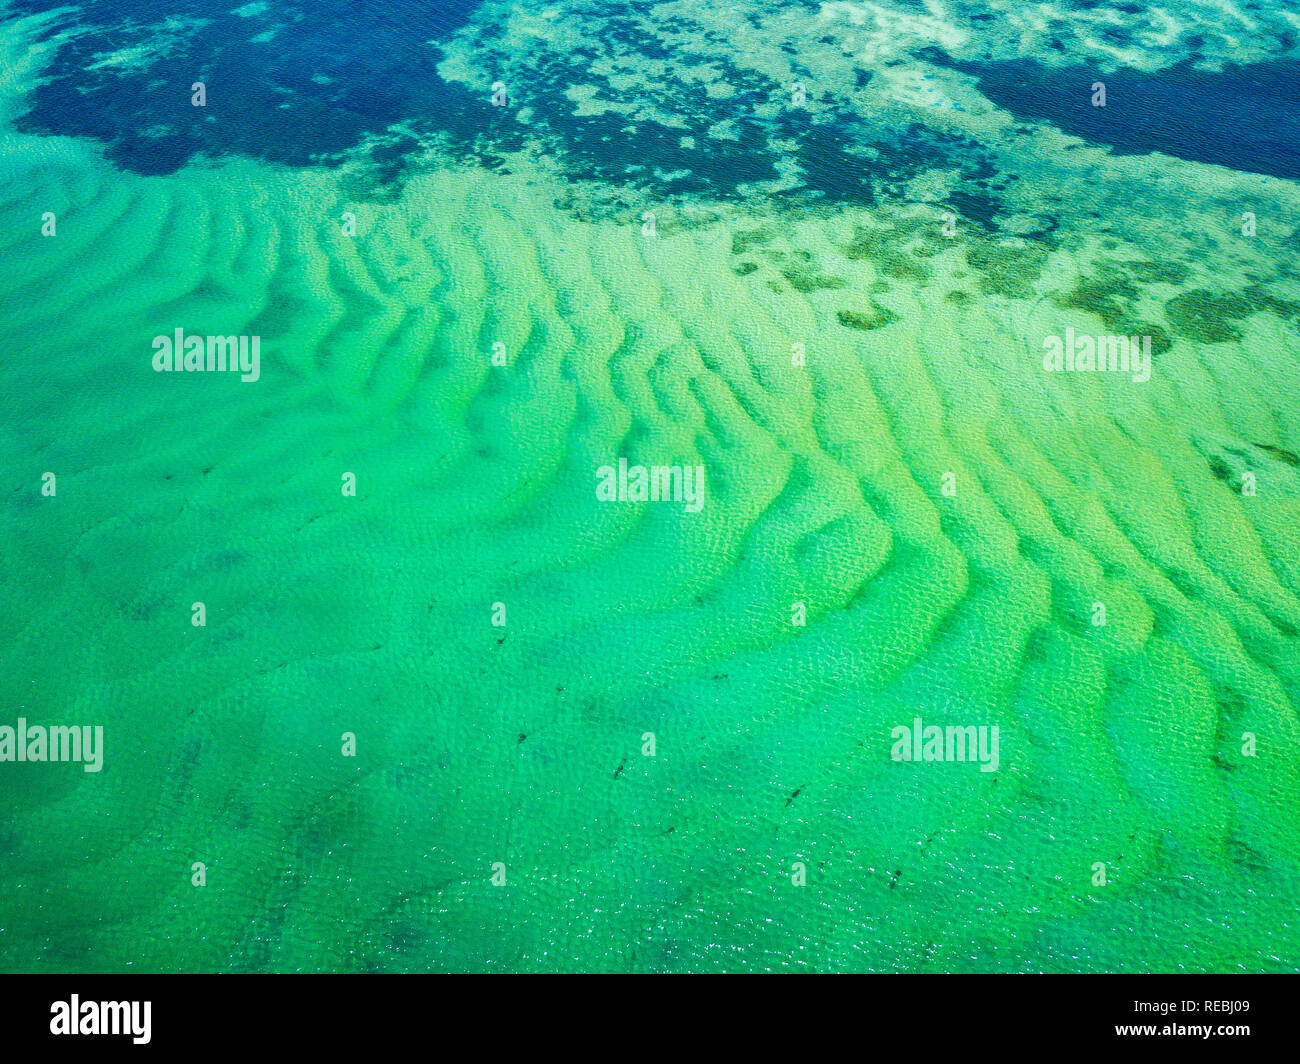 Incredible patterns and textures left by the sand with turquoise water glistening above. Pumicestone Passage, Sunshine Coast, QLD, Australia. Stock Photo